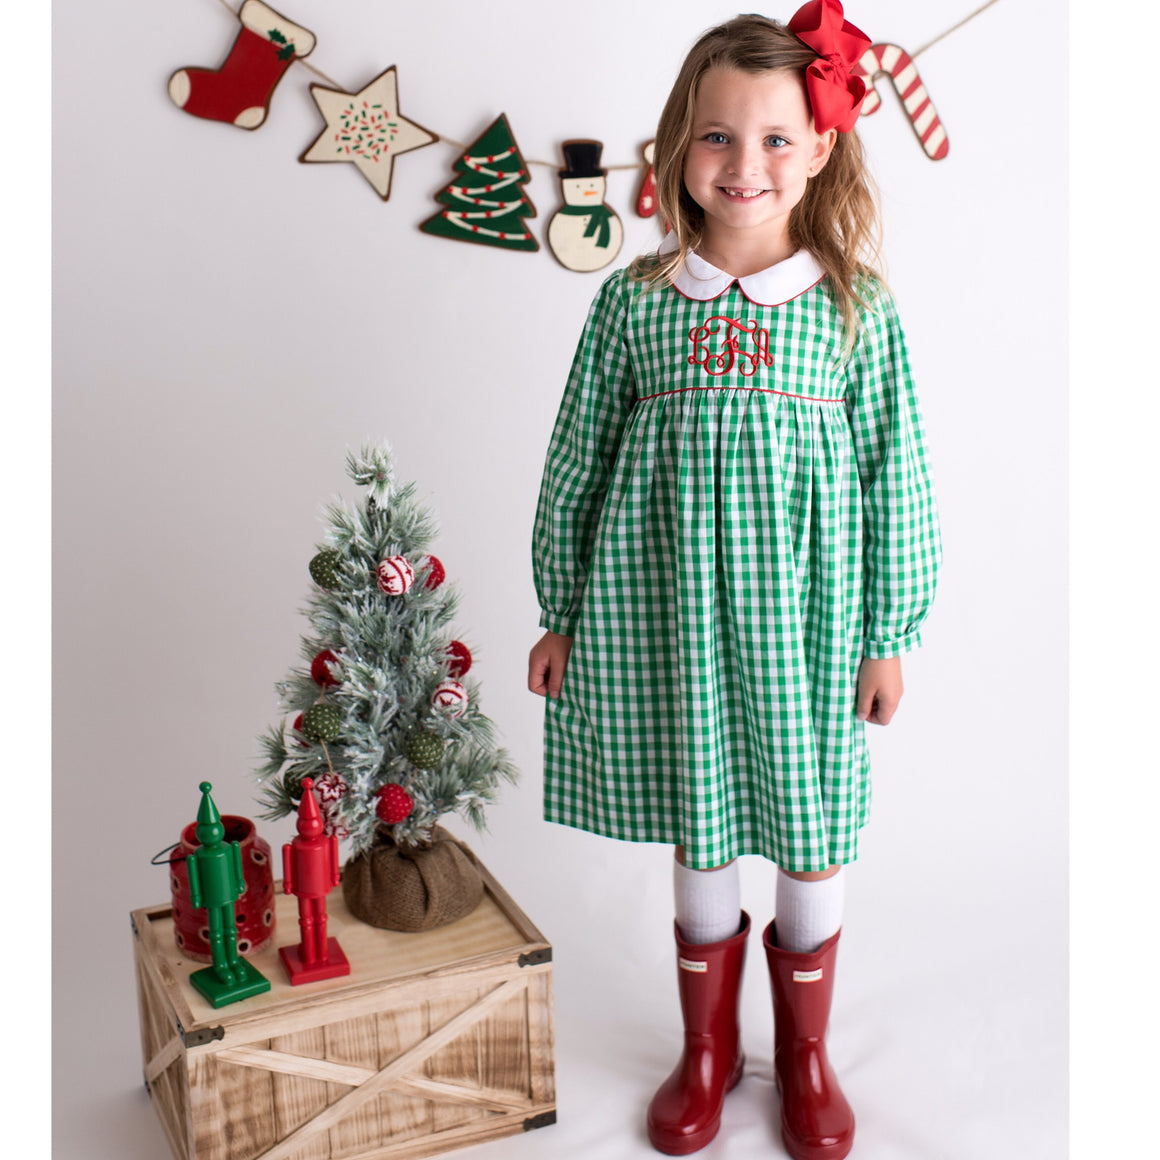 Green Gingham Monogrammed Christmas Dress with White Collar and Red Sash